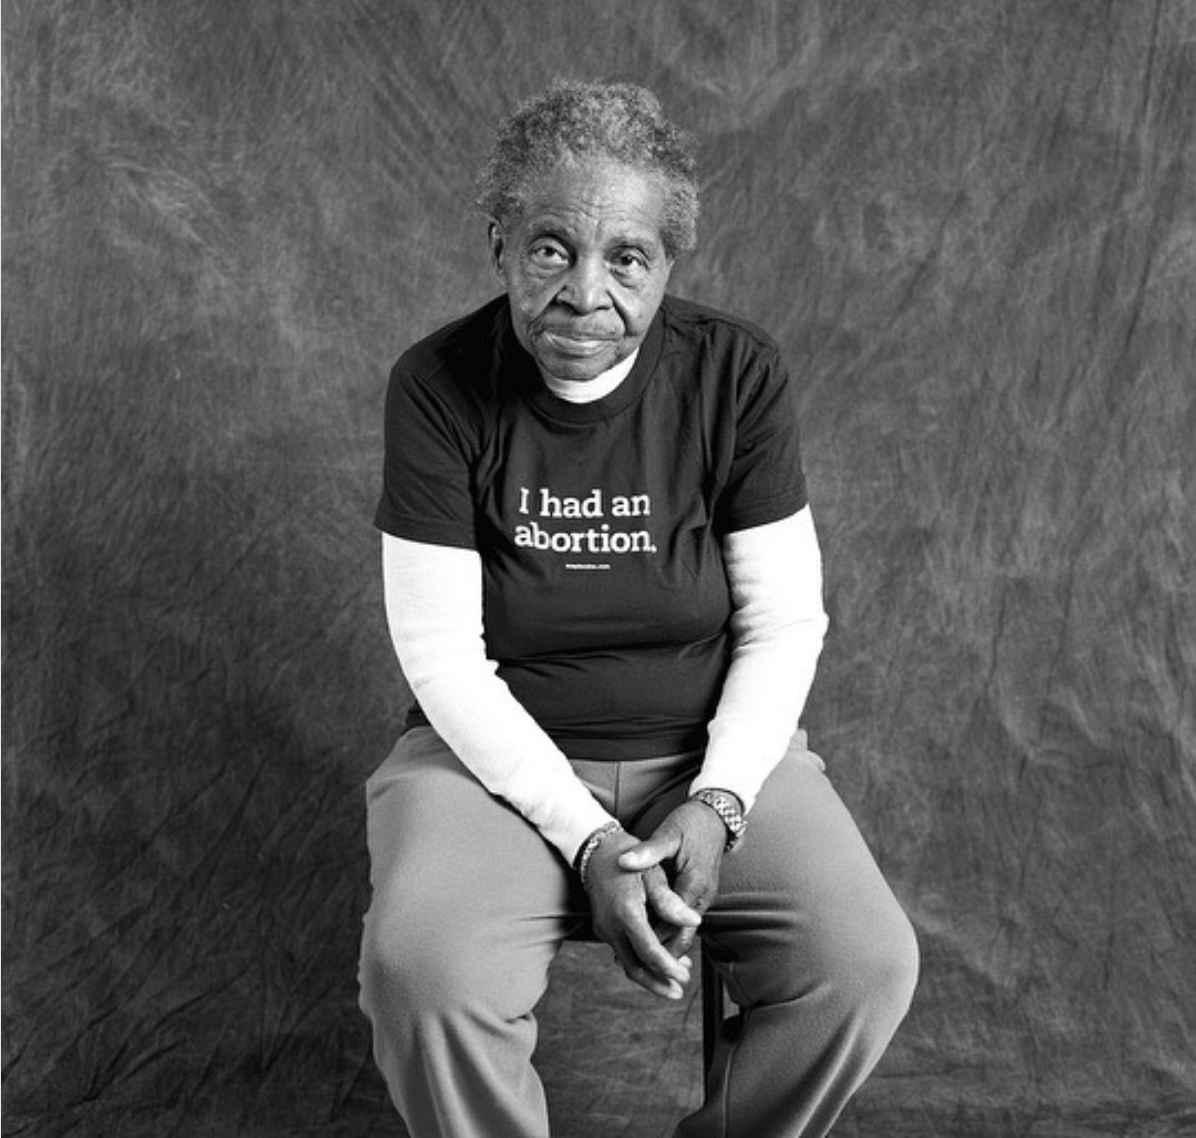 """A Black woman in her 80s wearing a t-shirt that says """"I had an abortion."""""""